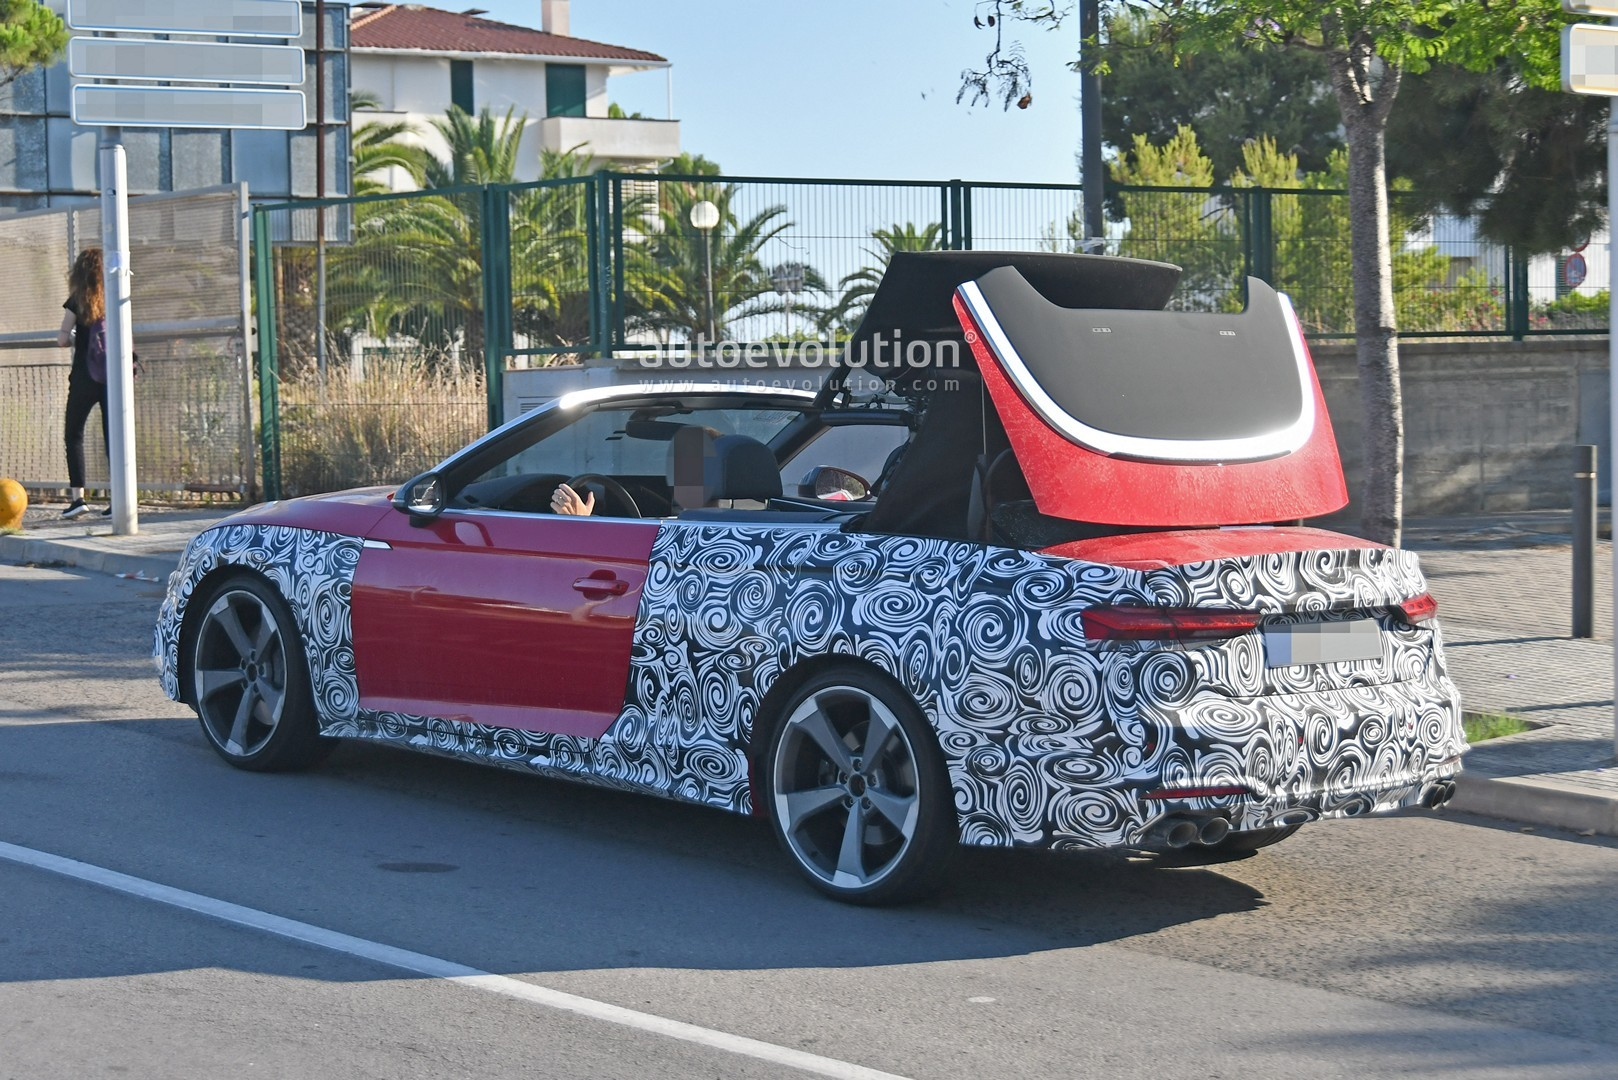 2020 - [Audi] A5 Coupé/Cab/SB restylée 2021-audi-s5-facelift-spied-with-cabrio-top-in-action-shows-minimal-changes_6